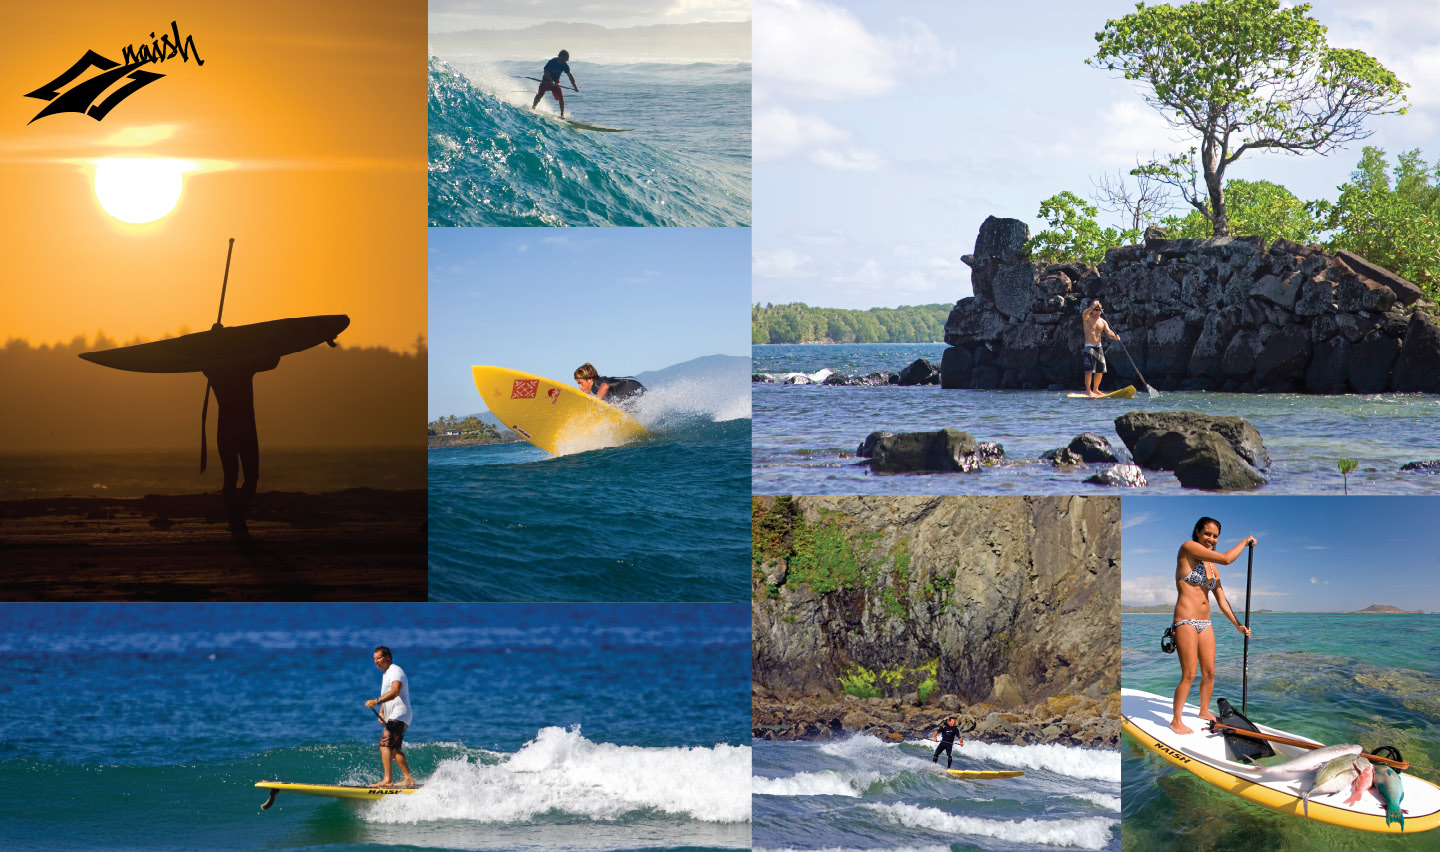 sup surfing wallpaper - photo #27